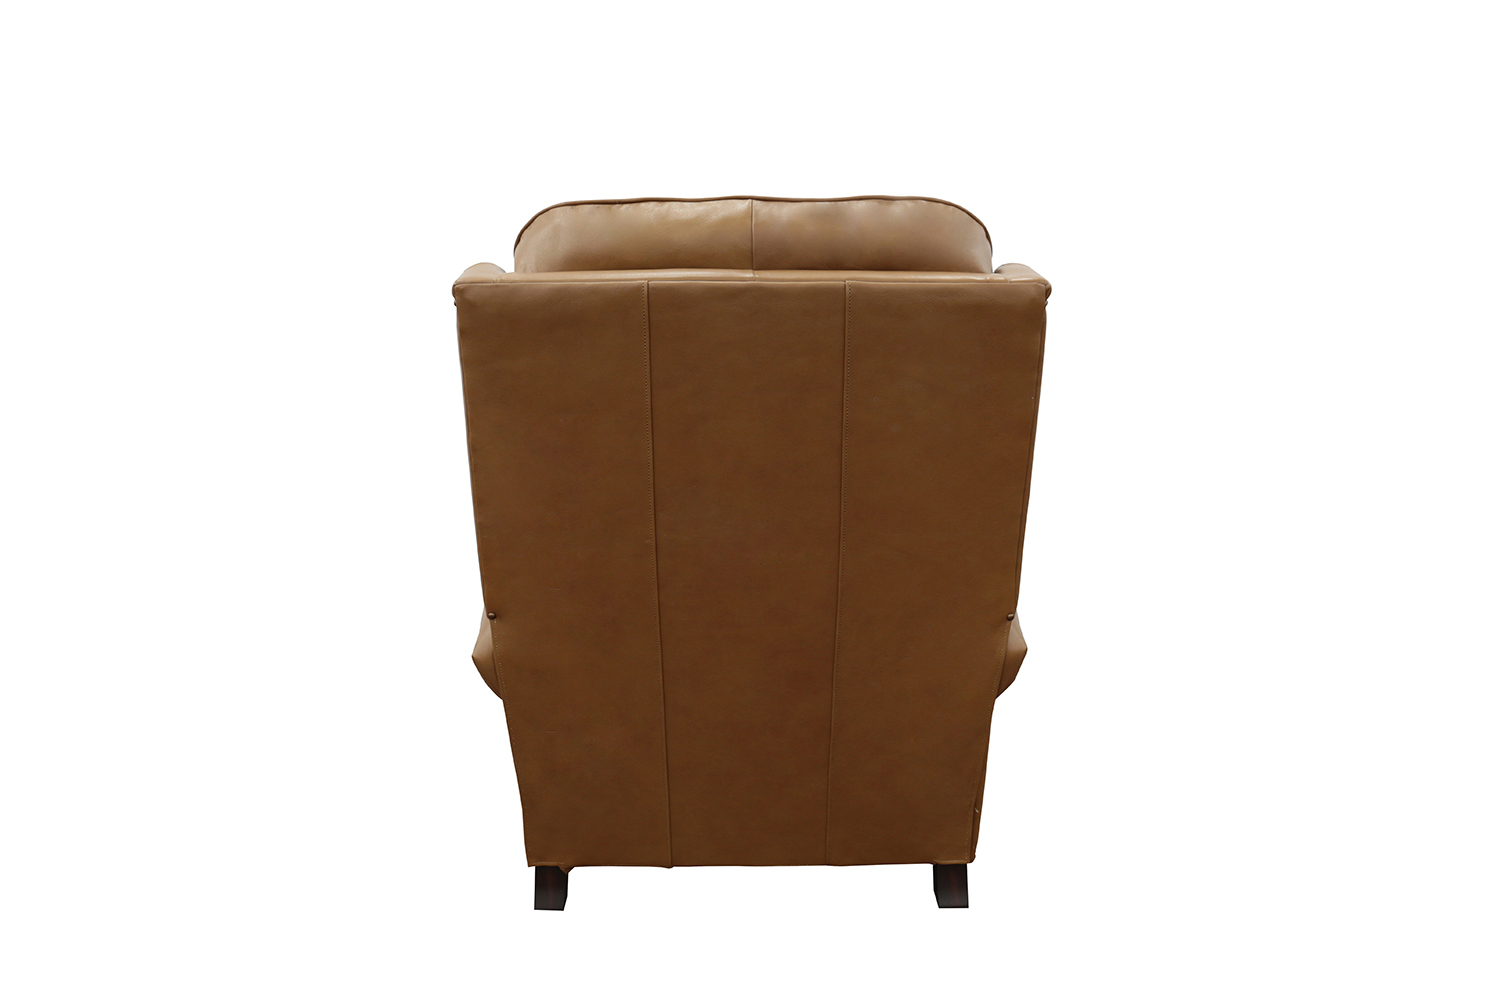 Barcalounger Ava Power Recliner Chair - Shoreham Ponytail/All Leather